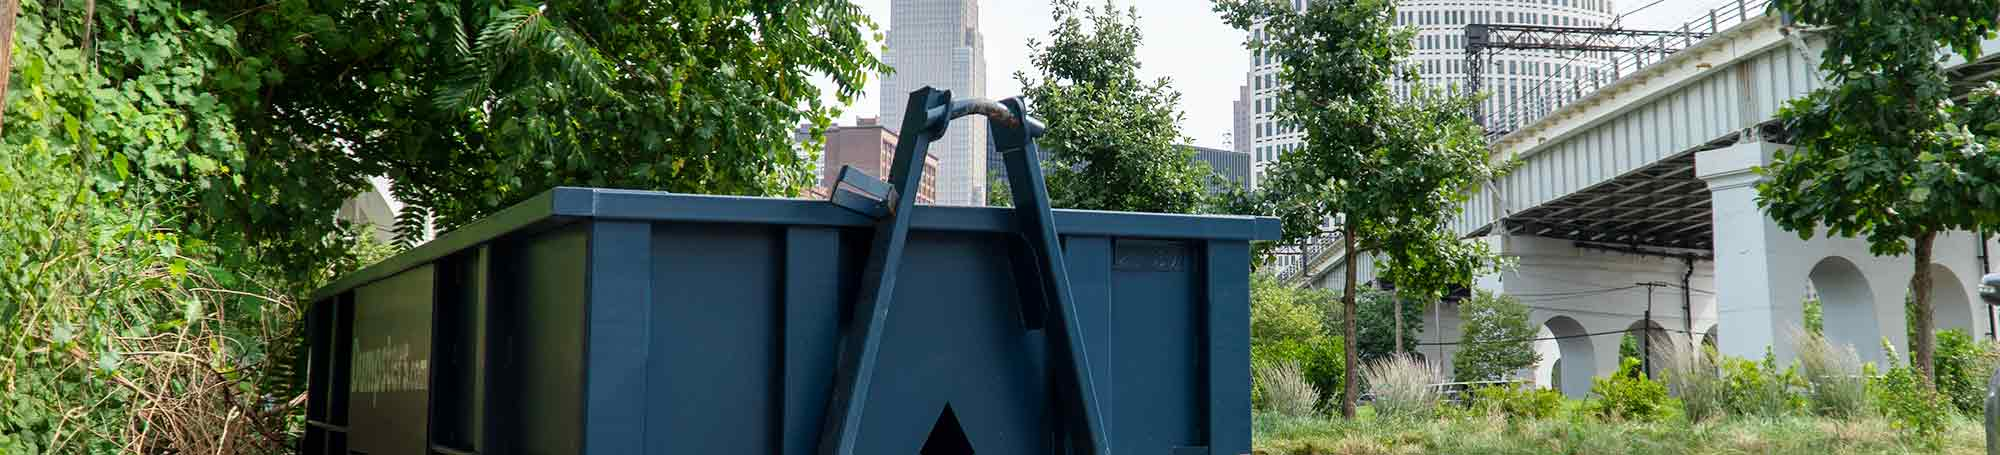 Blue Roll Off Dumpster With Cleveland Skyline in the Background.